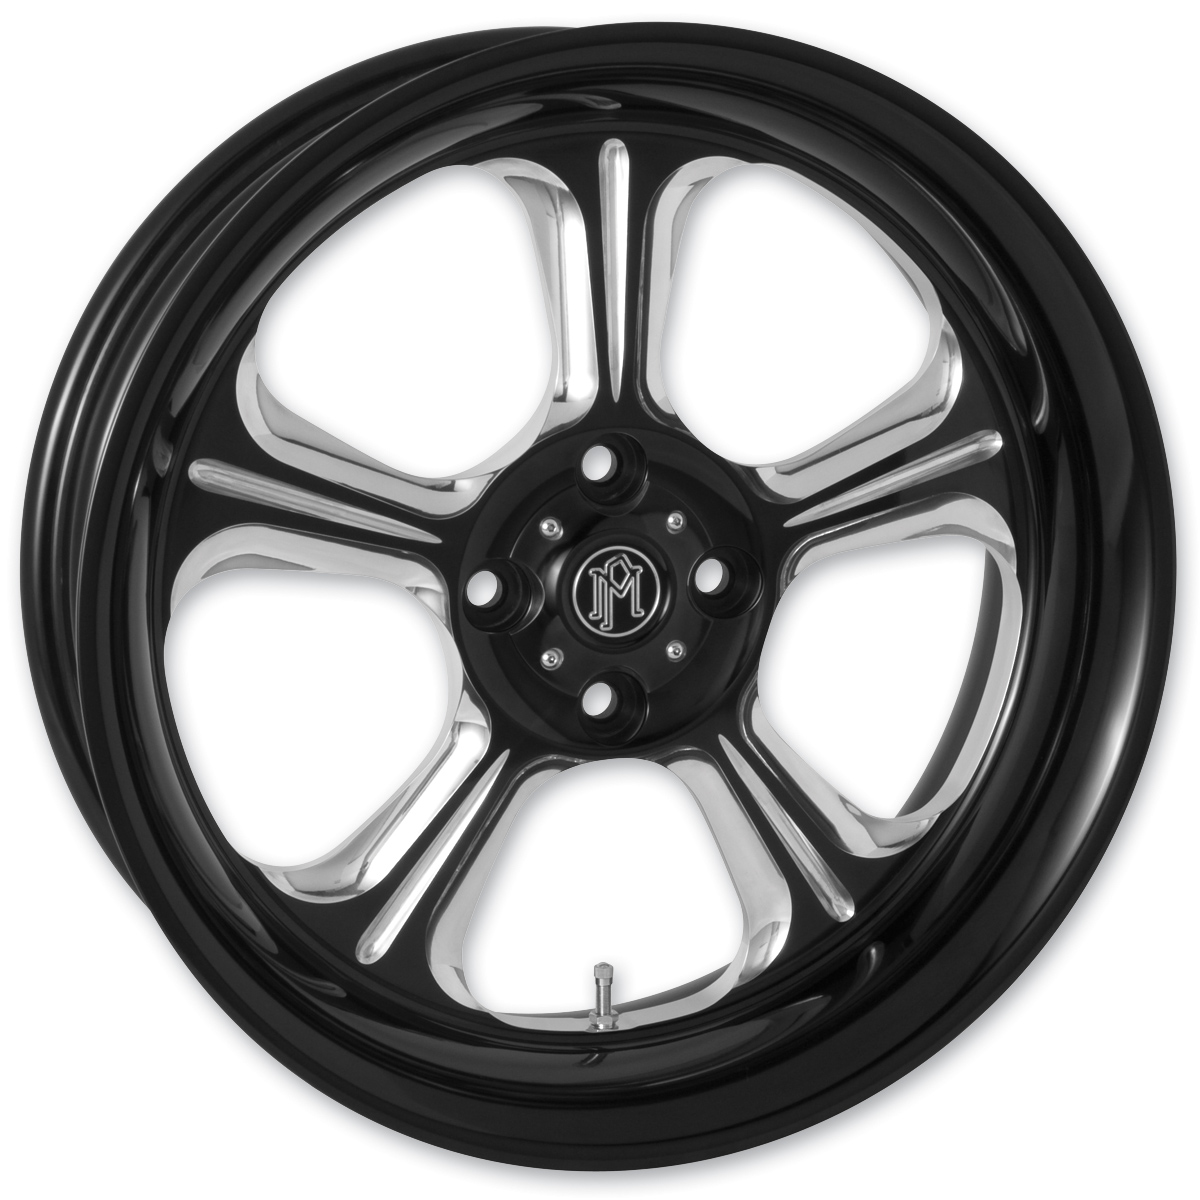 Performance Machine Wrath Platinum Contrast Cut Rear Wheel 18x5.5 Non-ABS